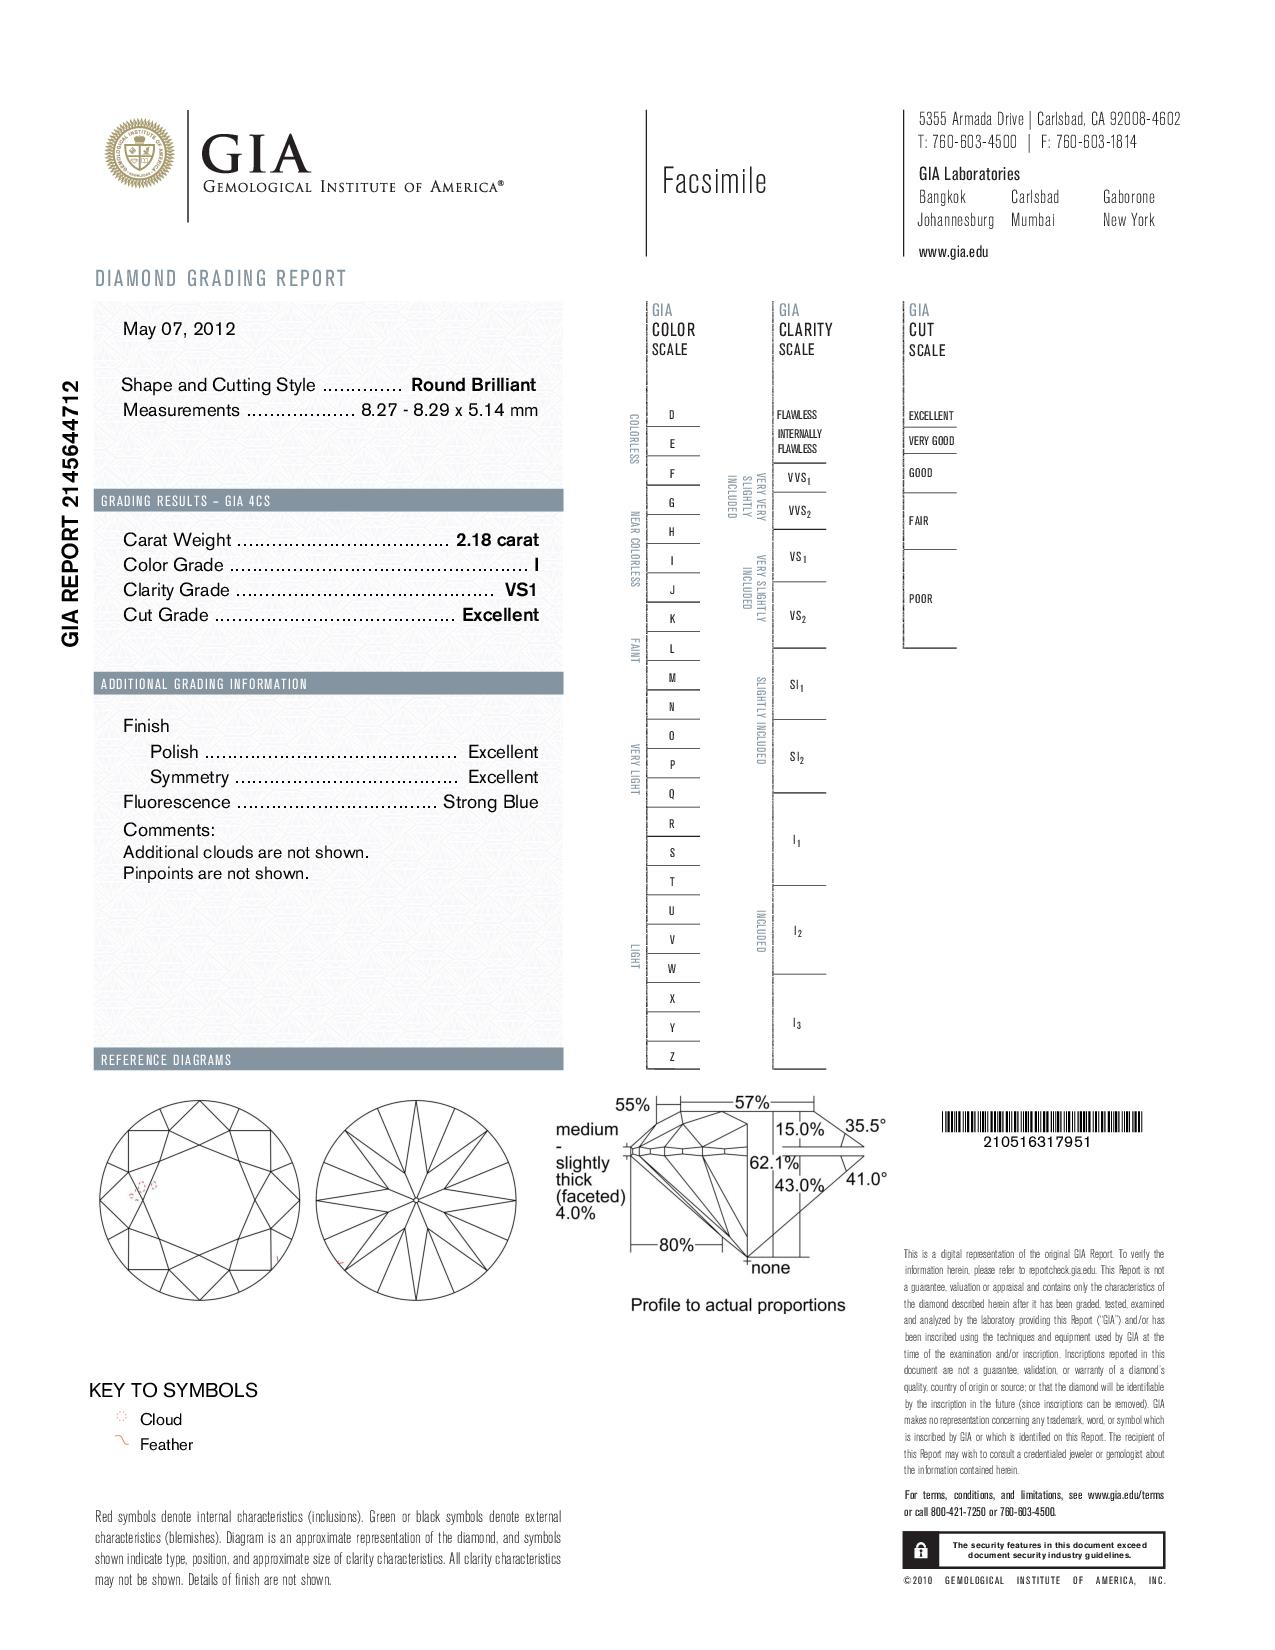 This is a 2.18 carat round shape, I color, VS1 clarity natural diamond accompanied by a GIA grading report.